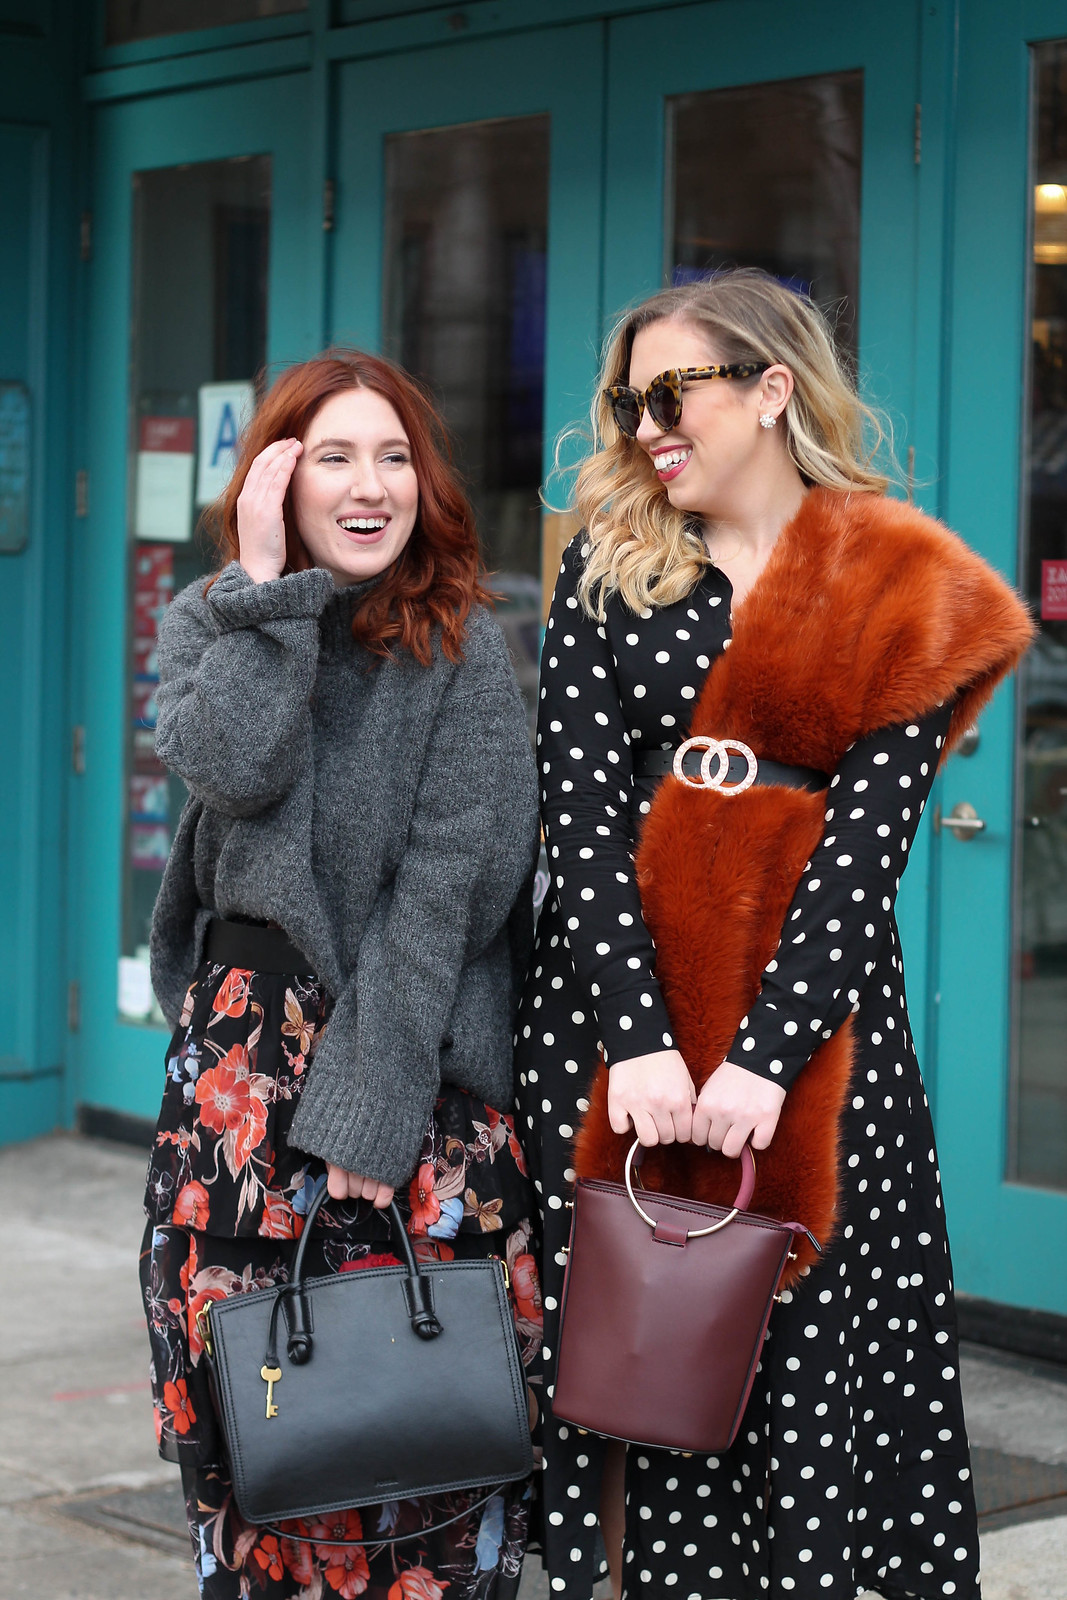 Blogger Besties Girl Wearing Oversized Turtleneck Dark Floral Skirt Blonde Girl wearing Polka Dot Midi Dress Burgundy Ring Bag